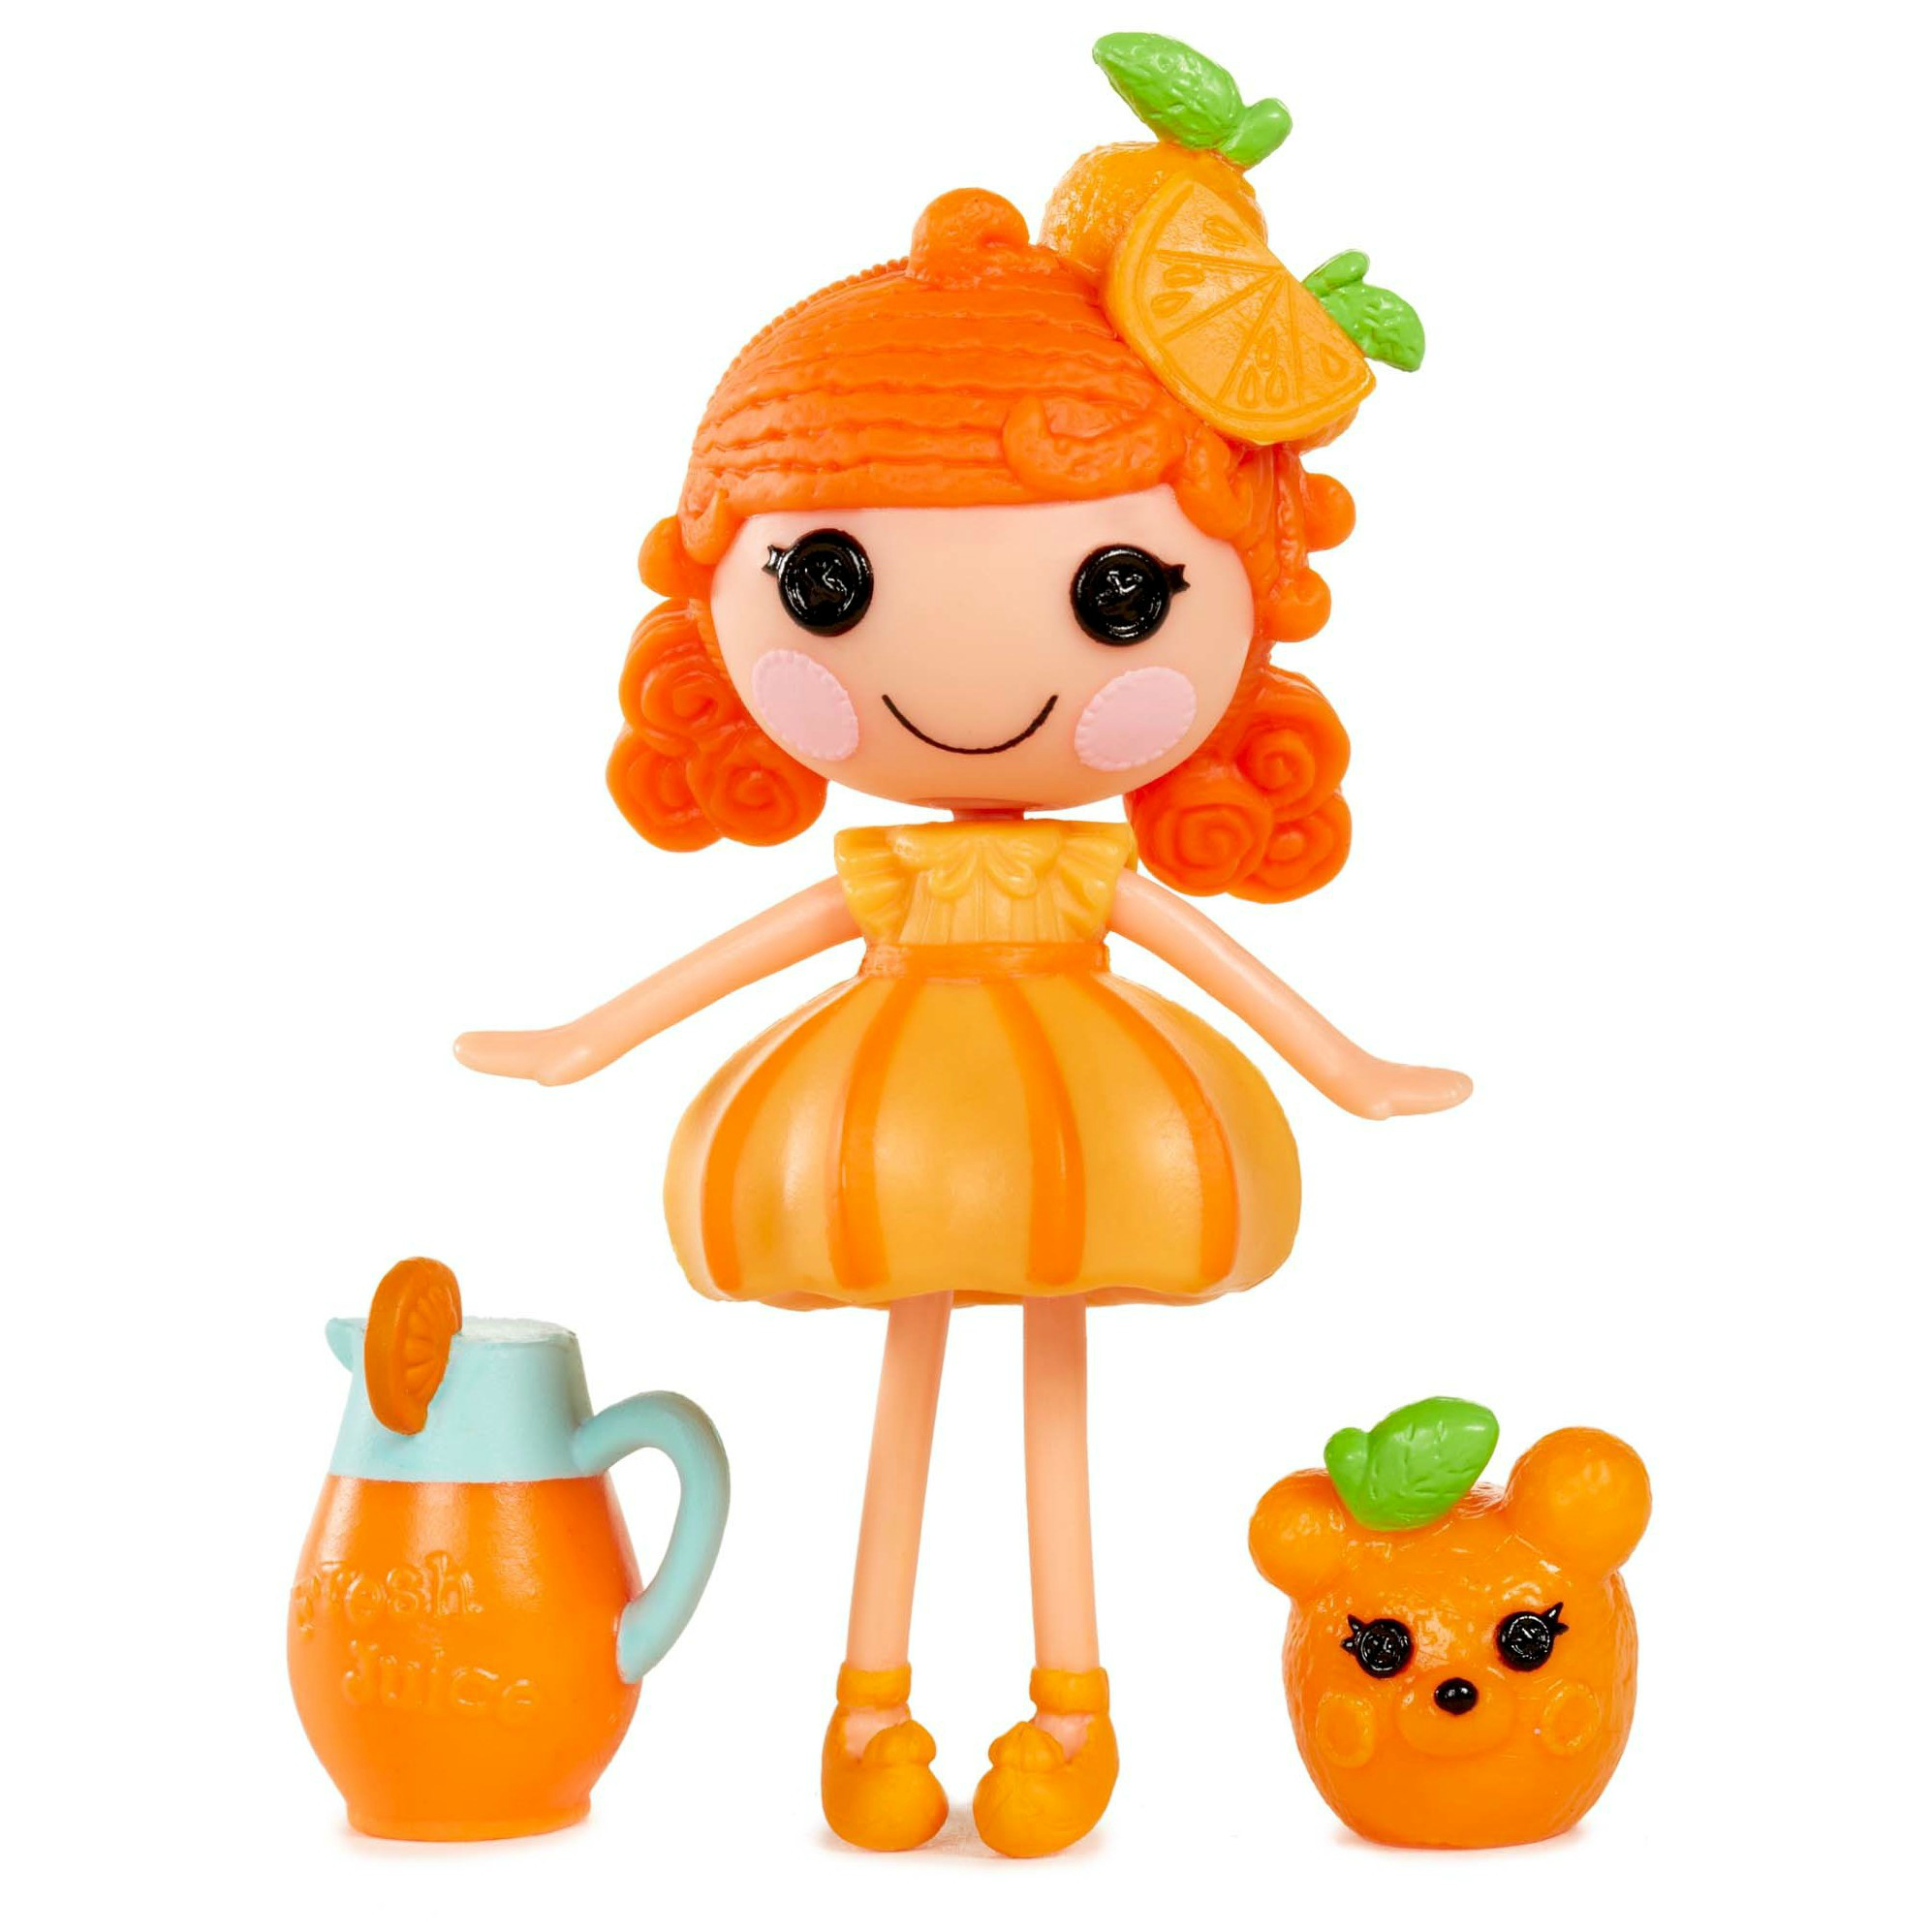 Tangerine clipart honey tangerine By Wikia Wiki powered FANDOM